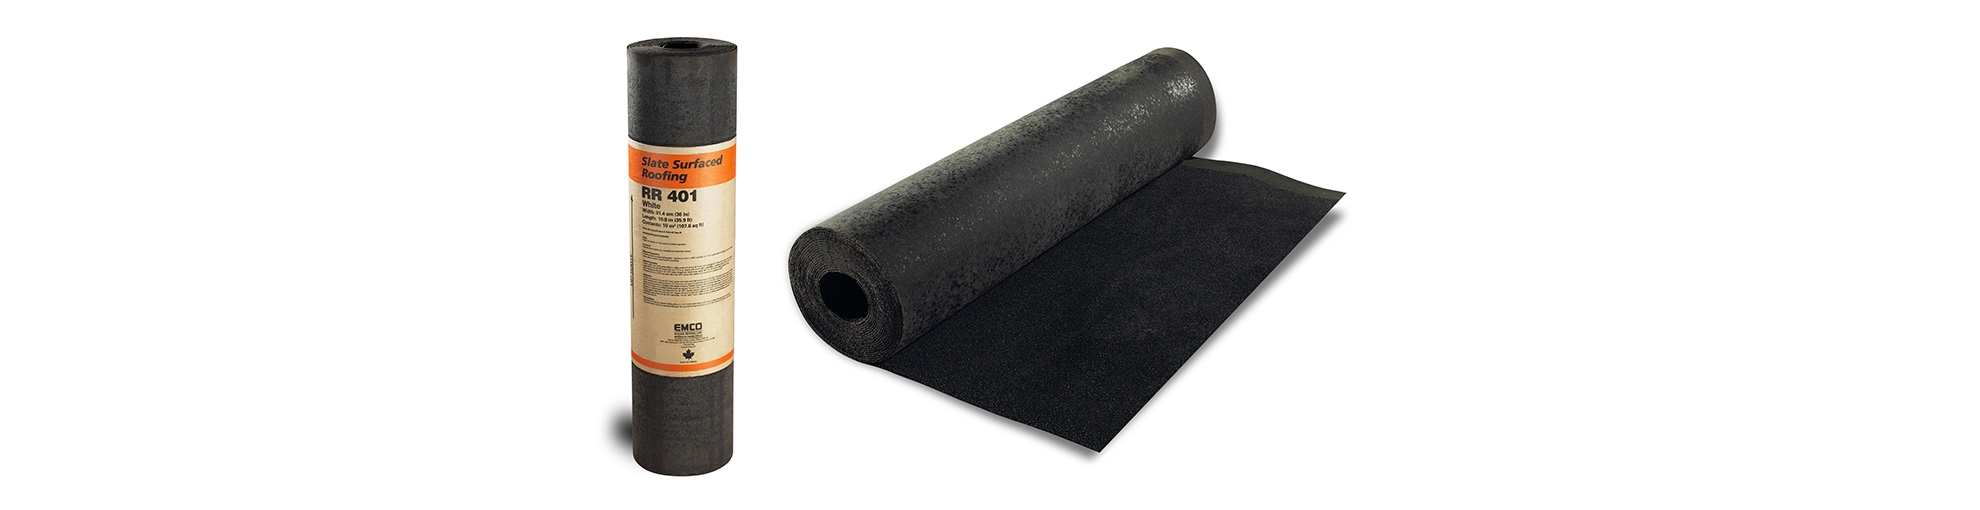 Slate surface roll roofing